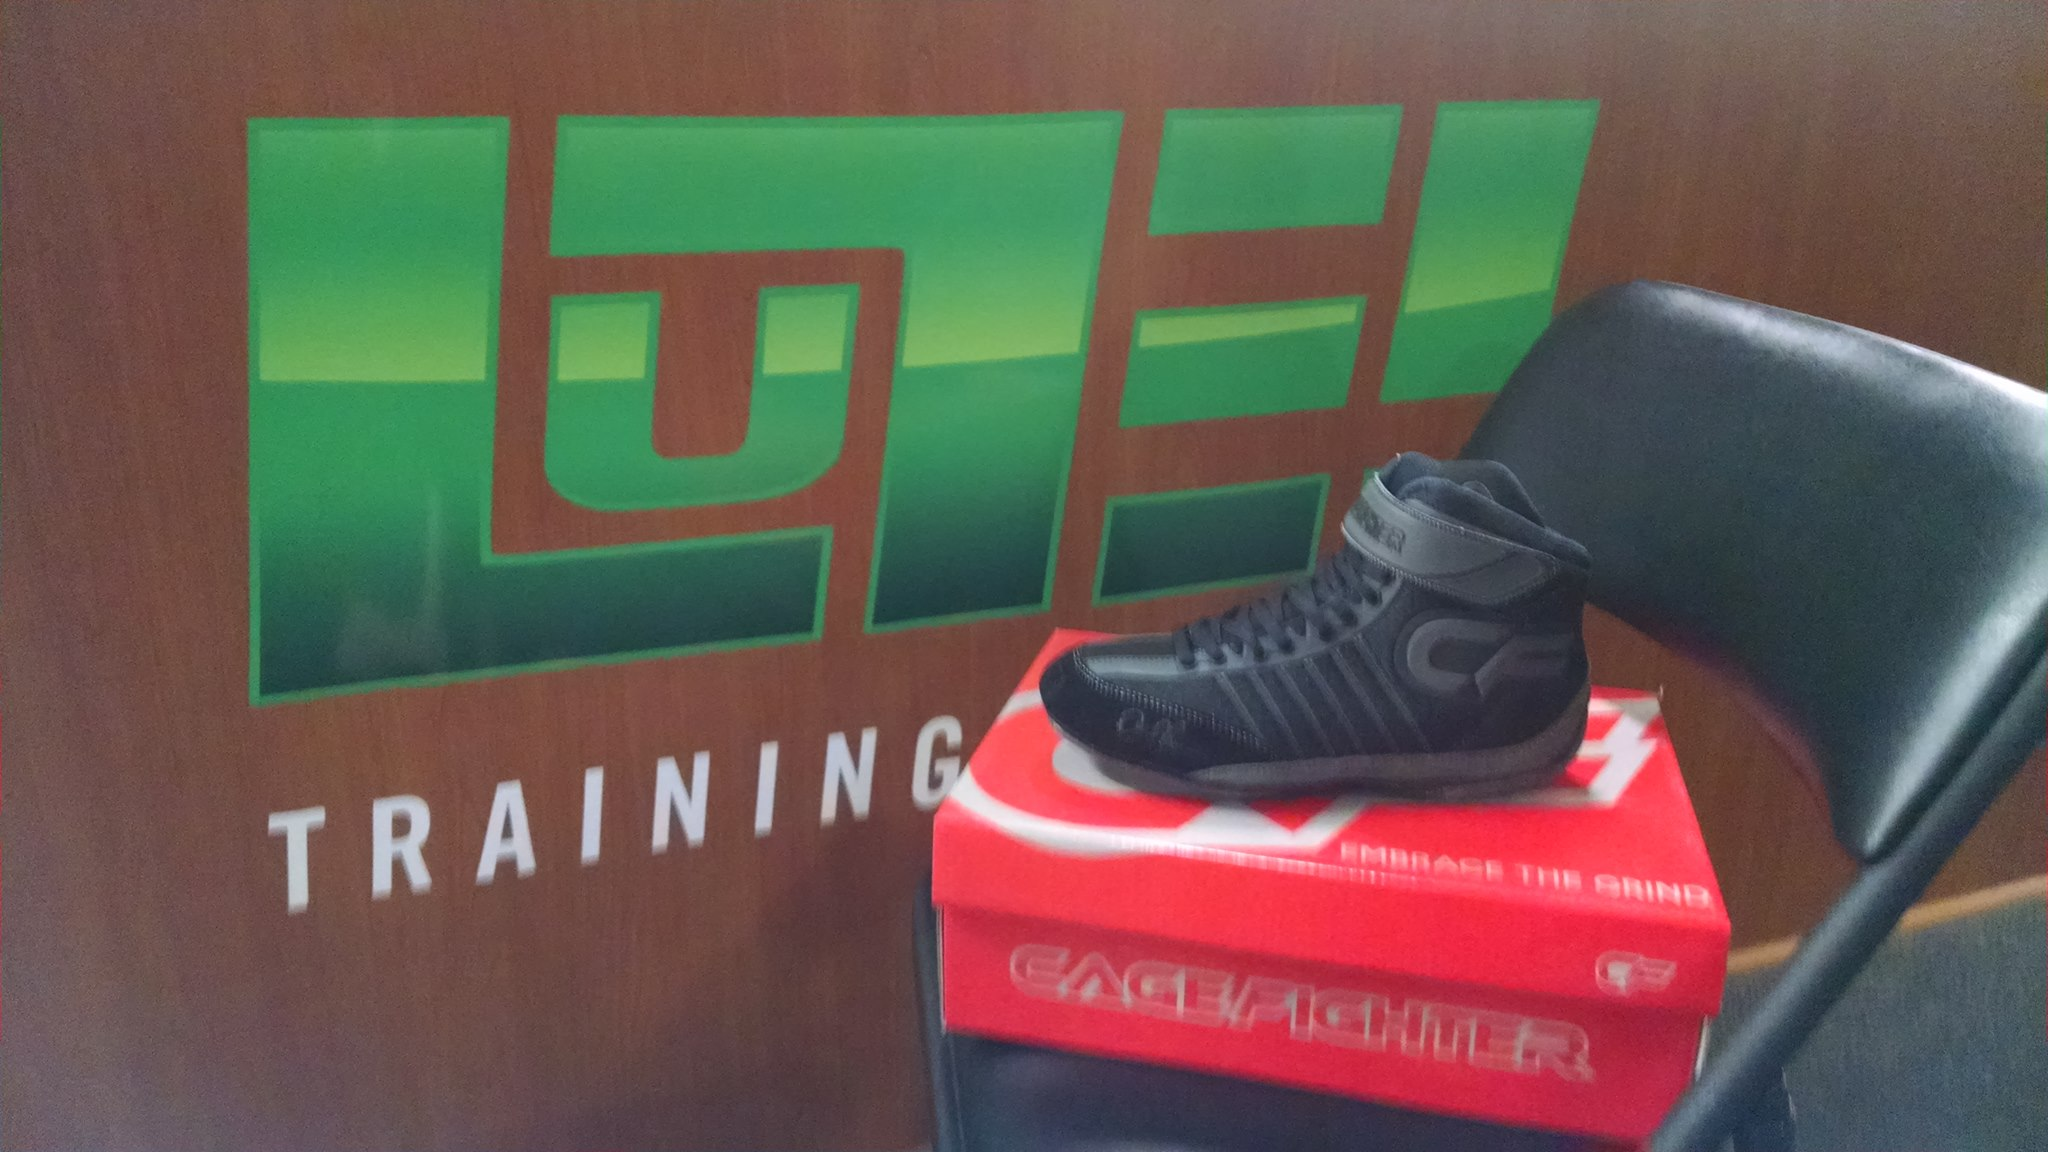 Check out DC's Wrestling Shoe!